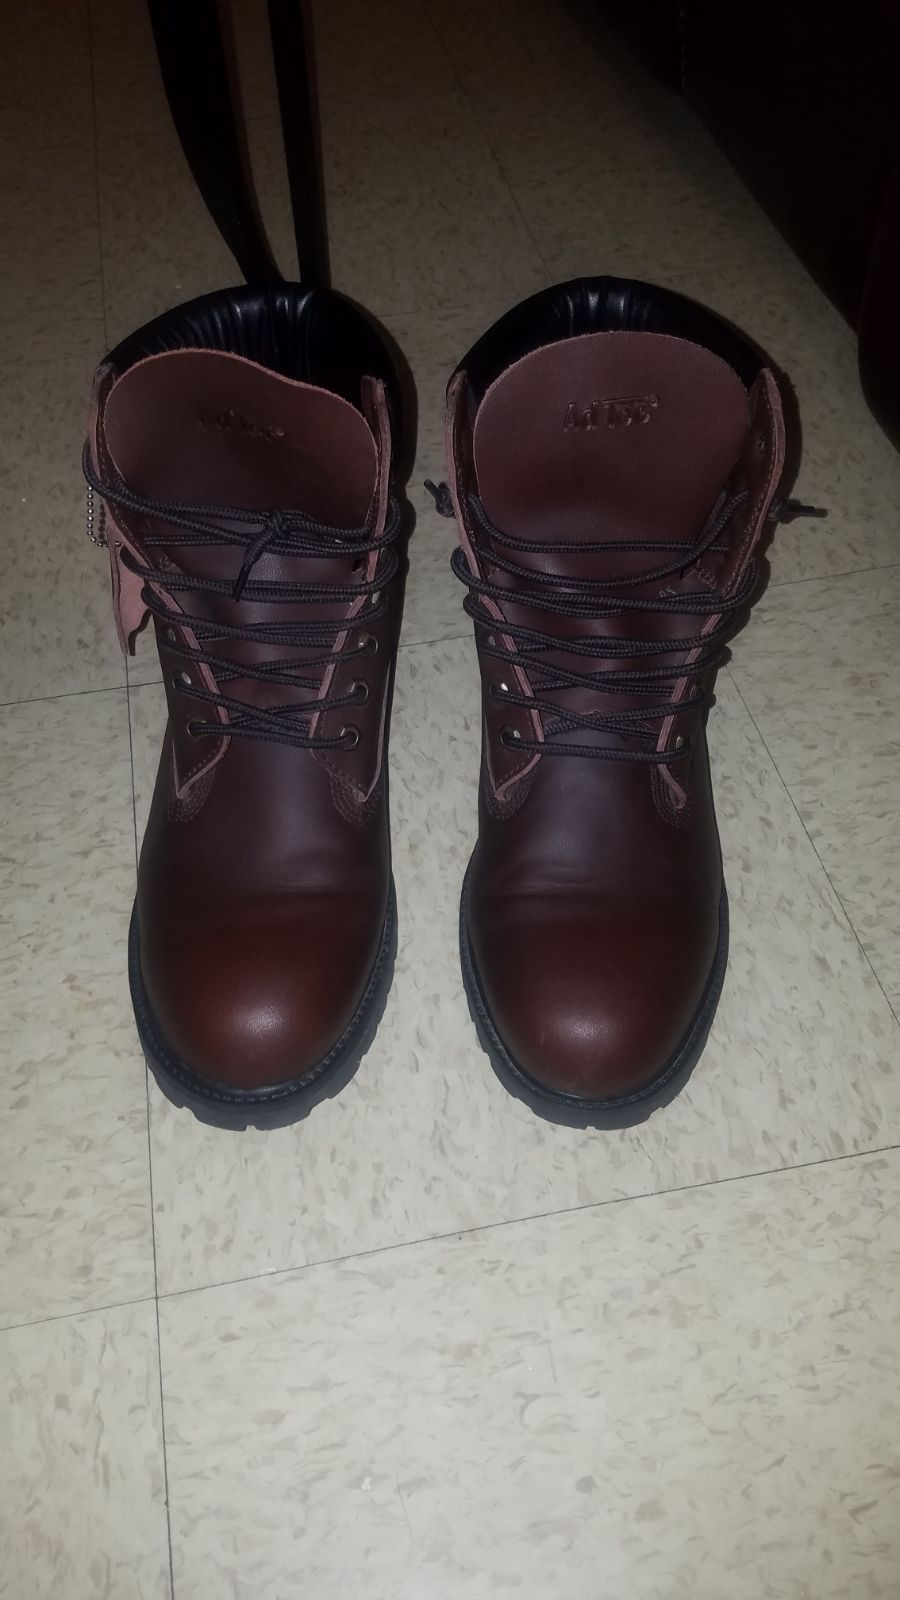 Adtec brown leather boots